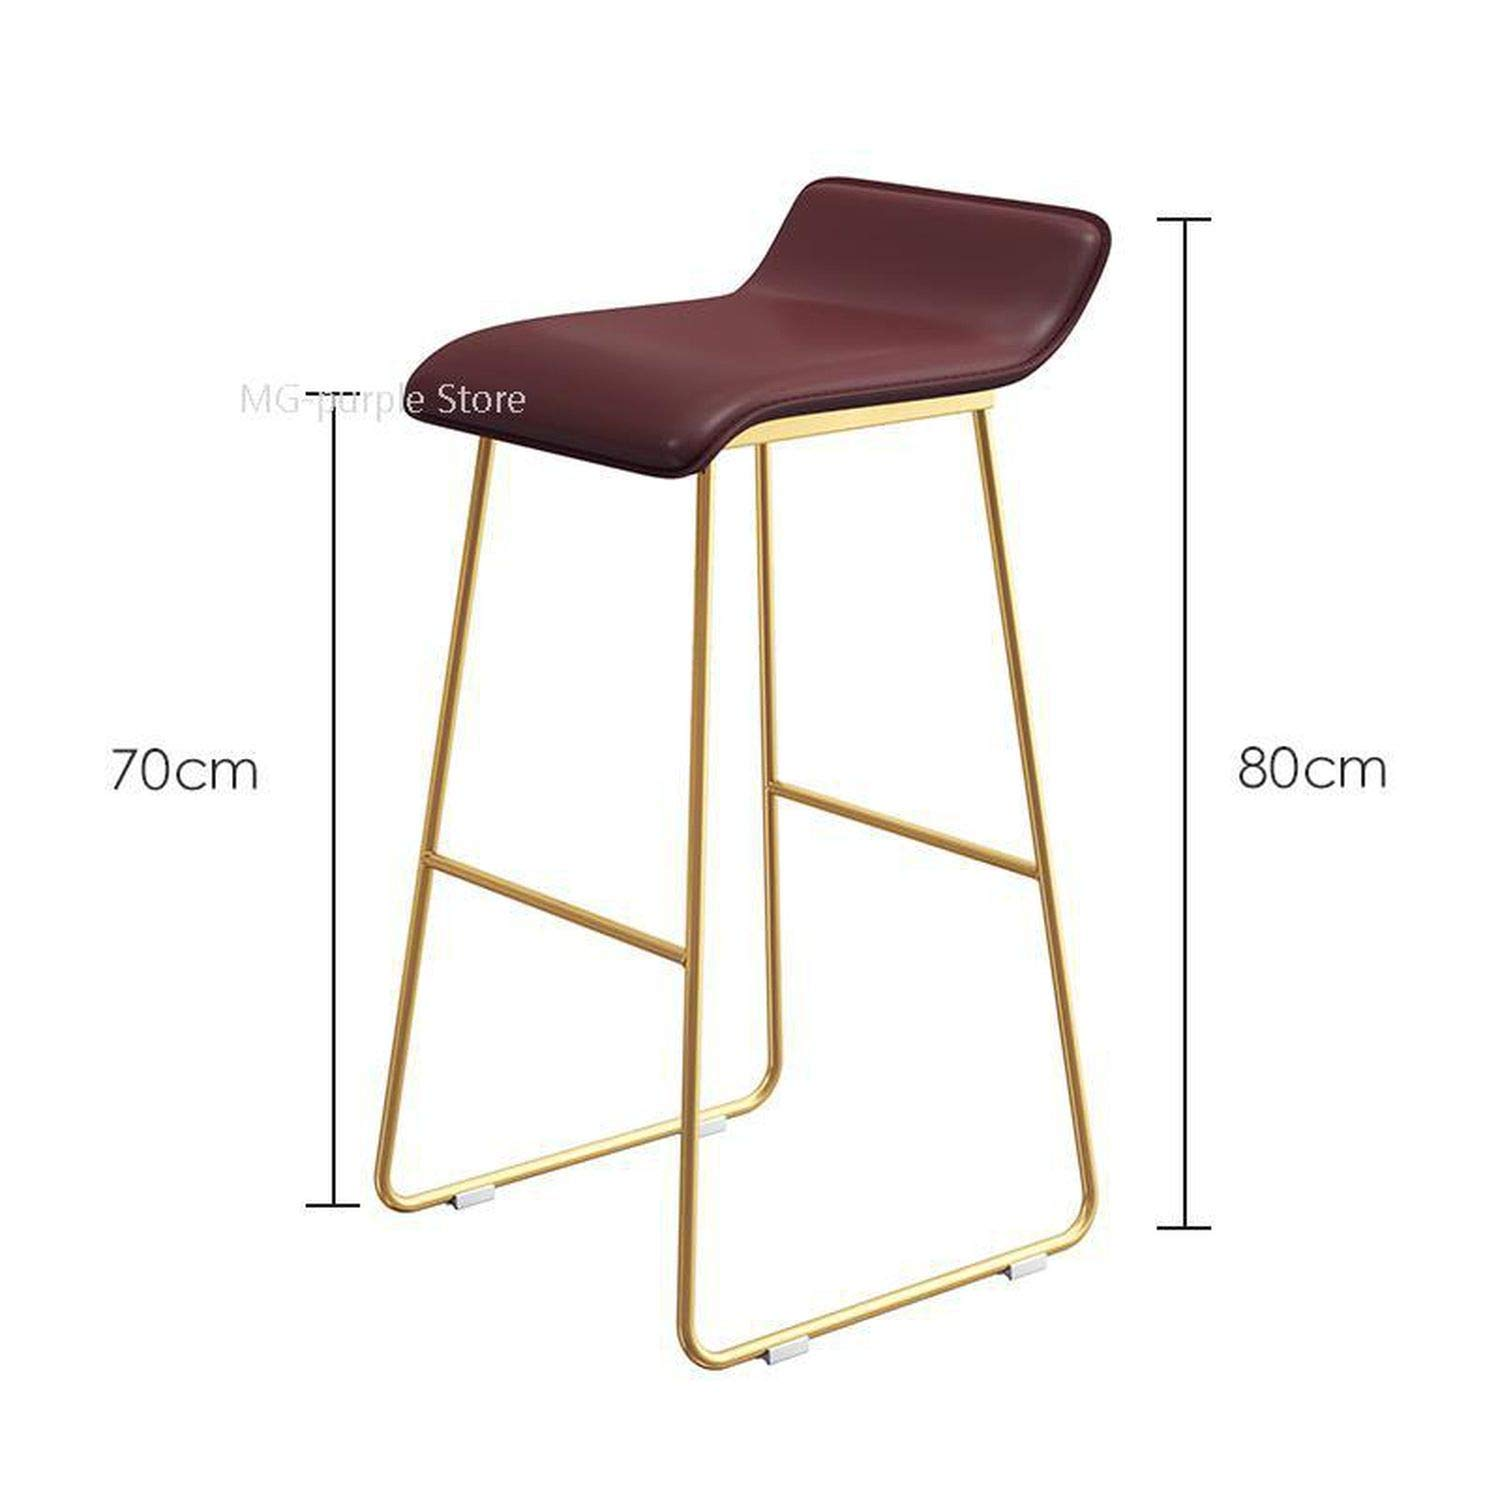 Style 11 one size Bar Chair Coffee Milk Tea Lounge Chair Simple Bar Stool Designer Wrought Iron gold High Chair Padded Bar Chair,Style 13